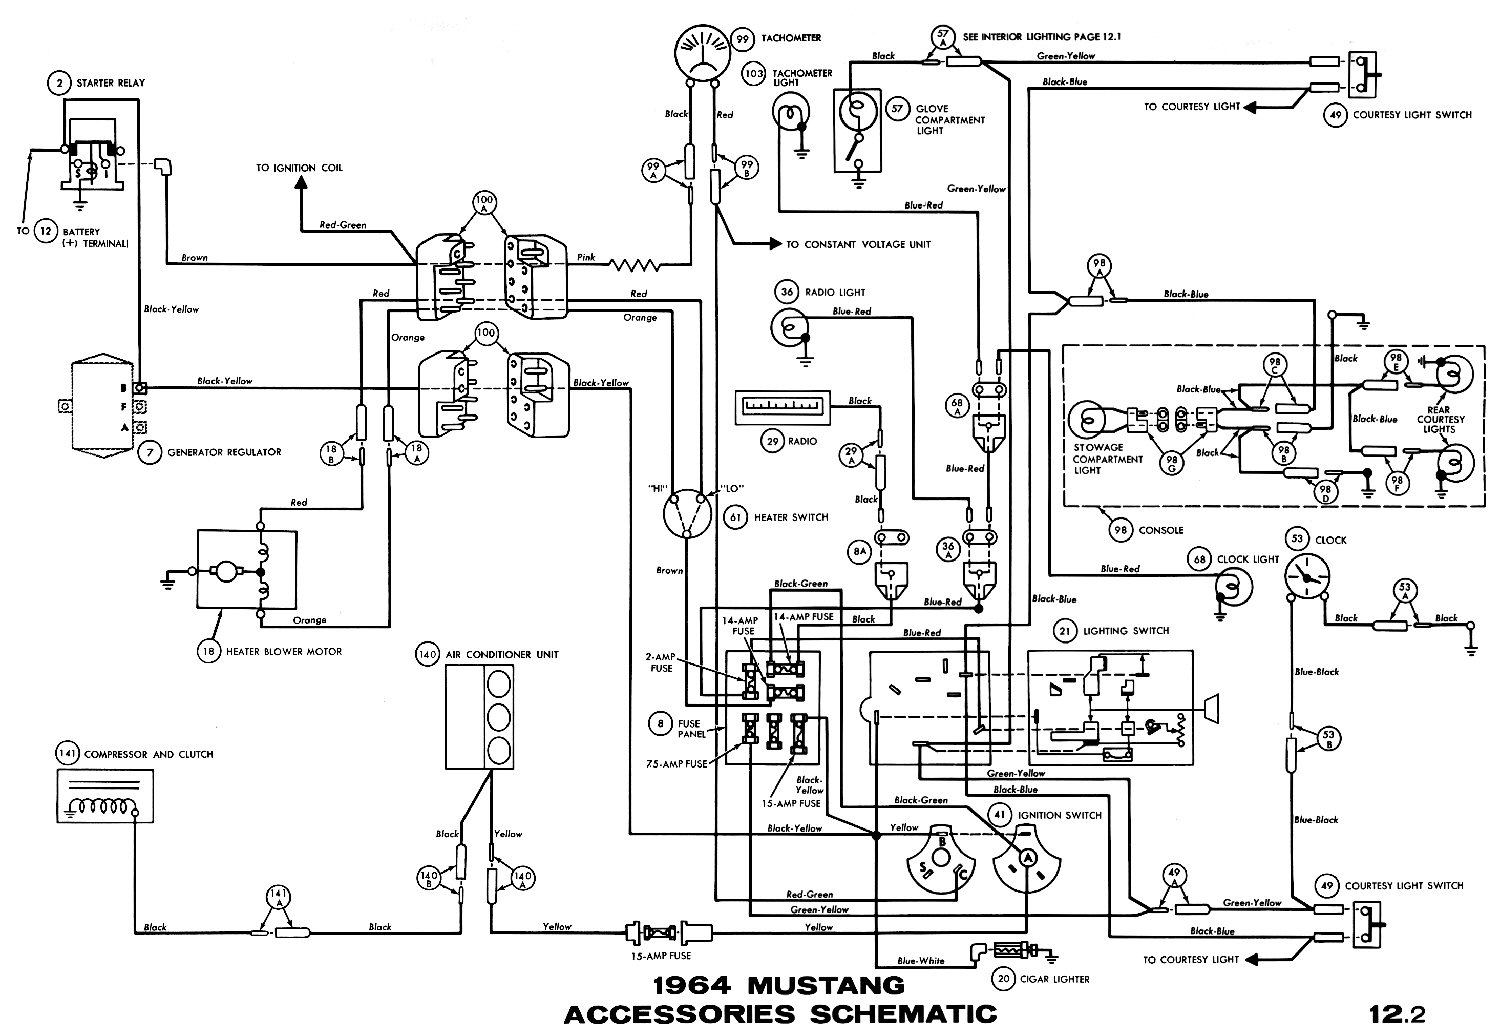 1975 Ford Mustang Ii Wiring Diagram | Wiring Diagram Wire Harnesses Ford on wire restraints, wire gloves, wire harness design, wire protection, wire straps, wire harnessing, wire lanyards, wire barrels, wire harness assembly,